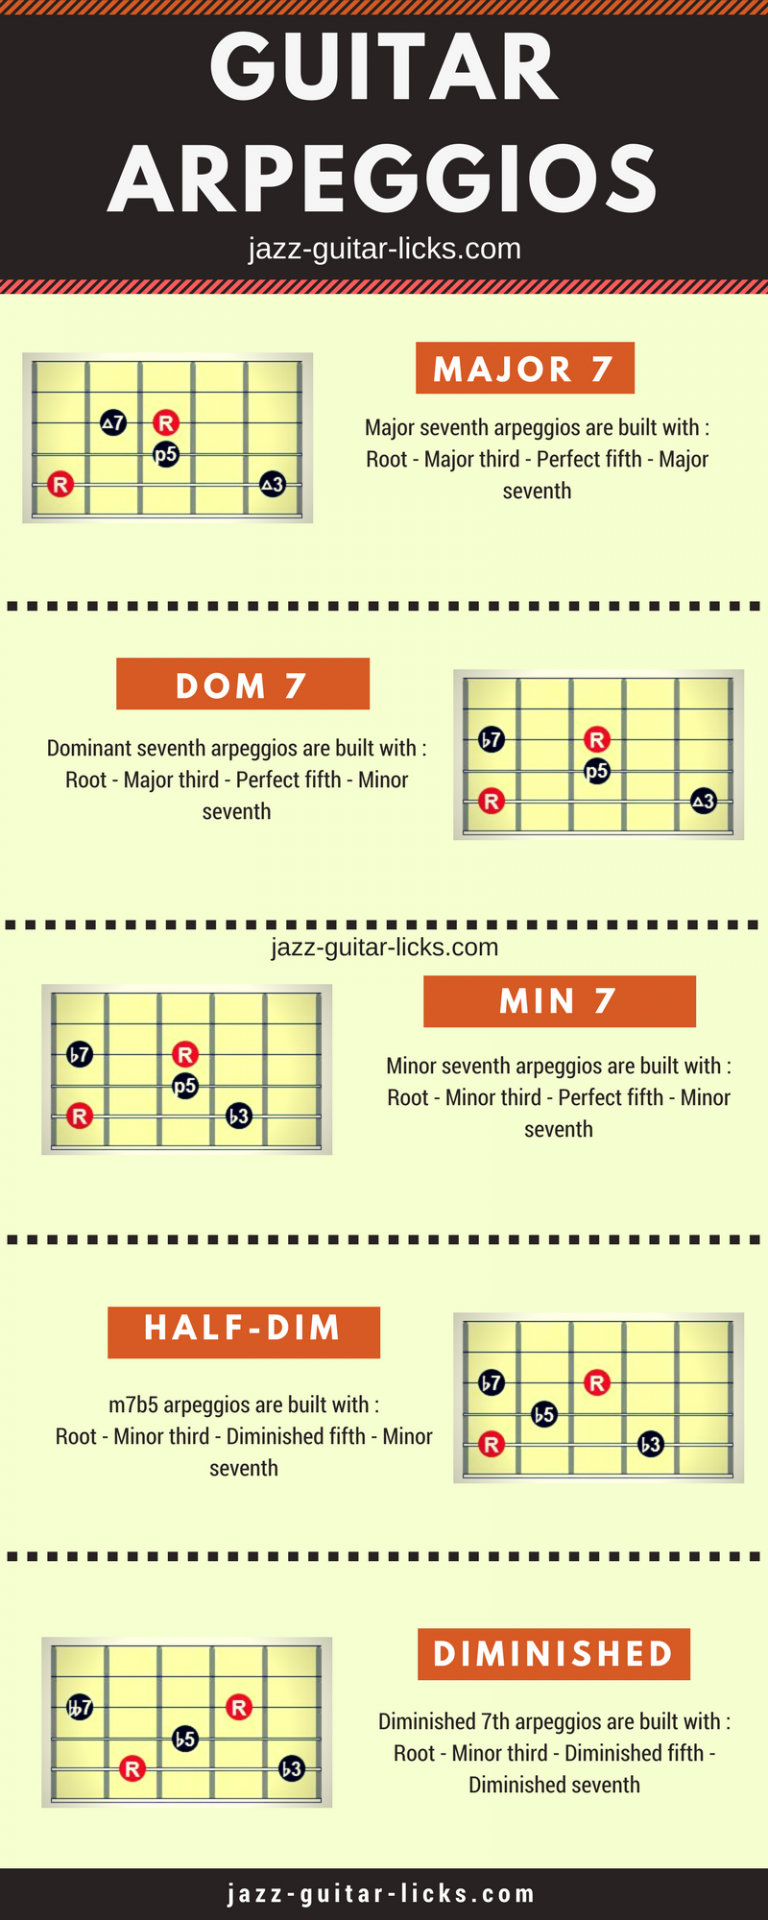 Guitar arpeggio diagrams infographic